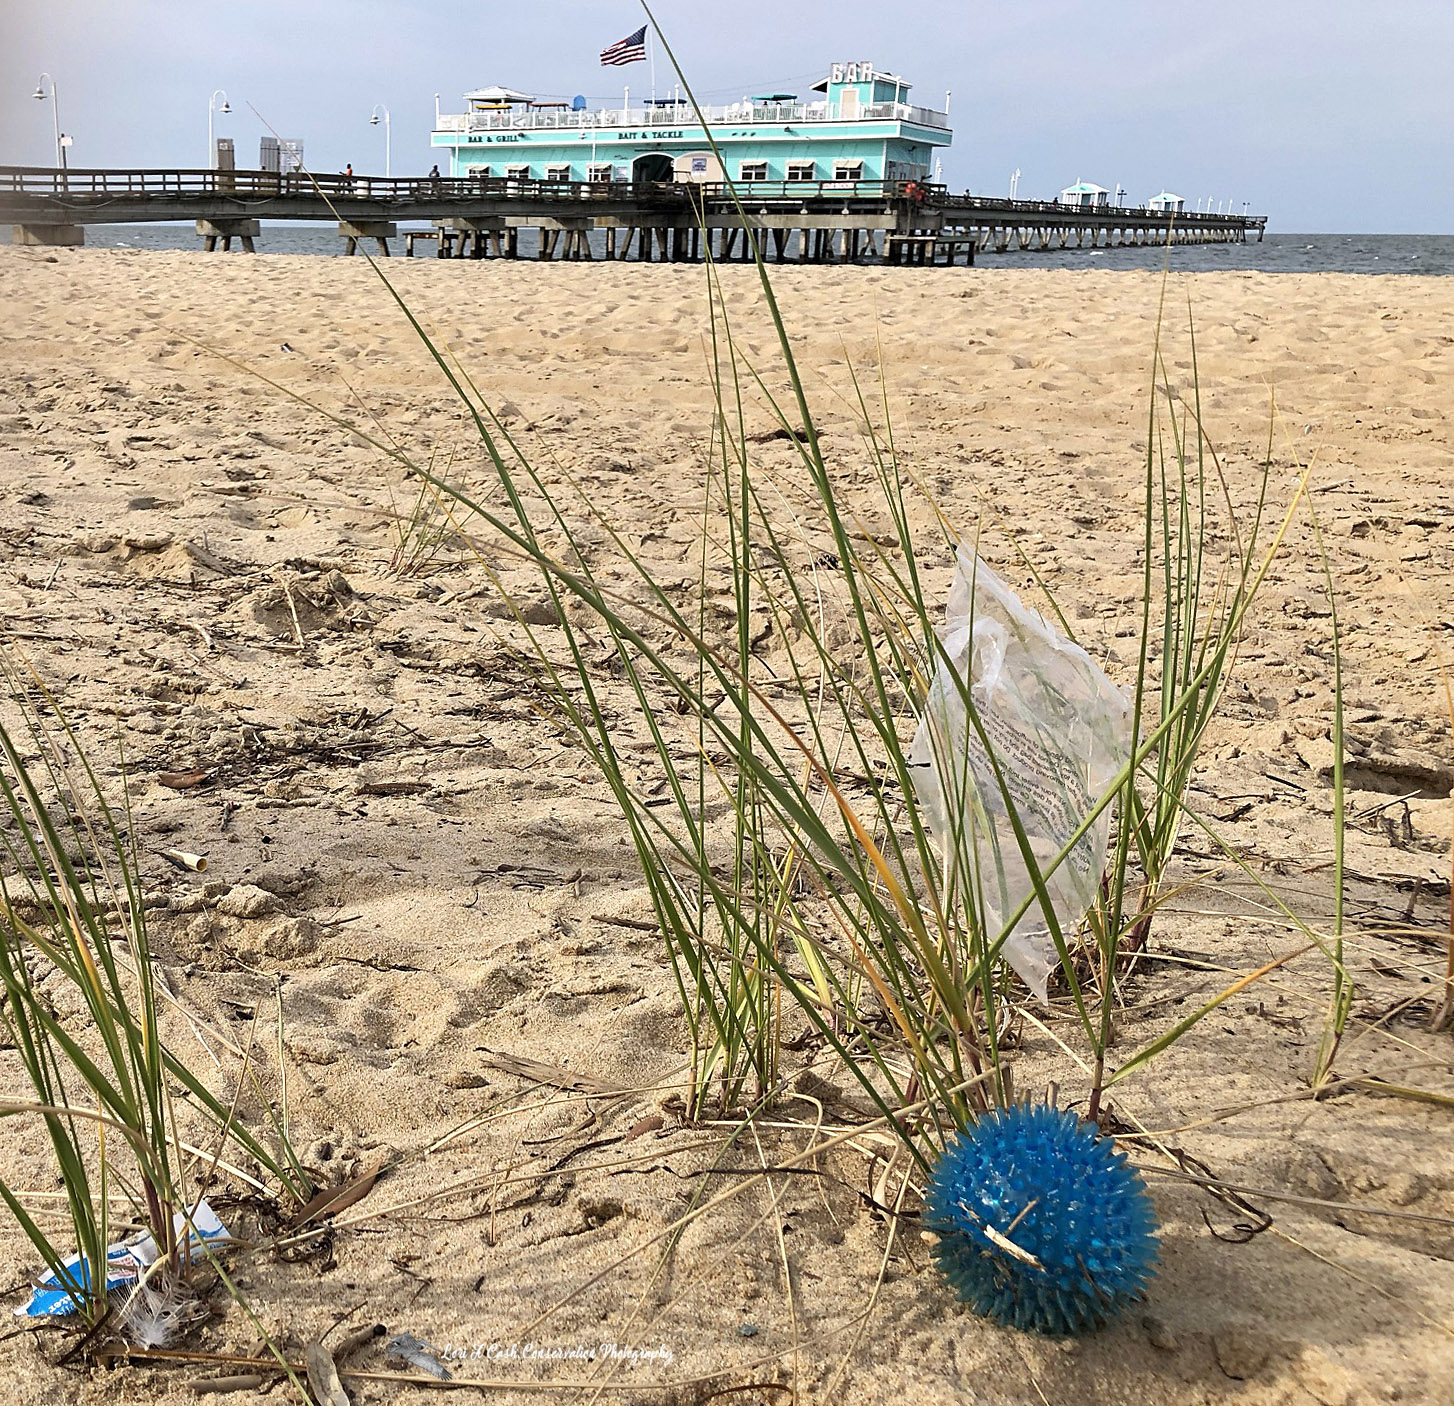 Litter on the beach at the Ocean View Fishing Pier in Norfolk, Virginia,